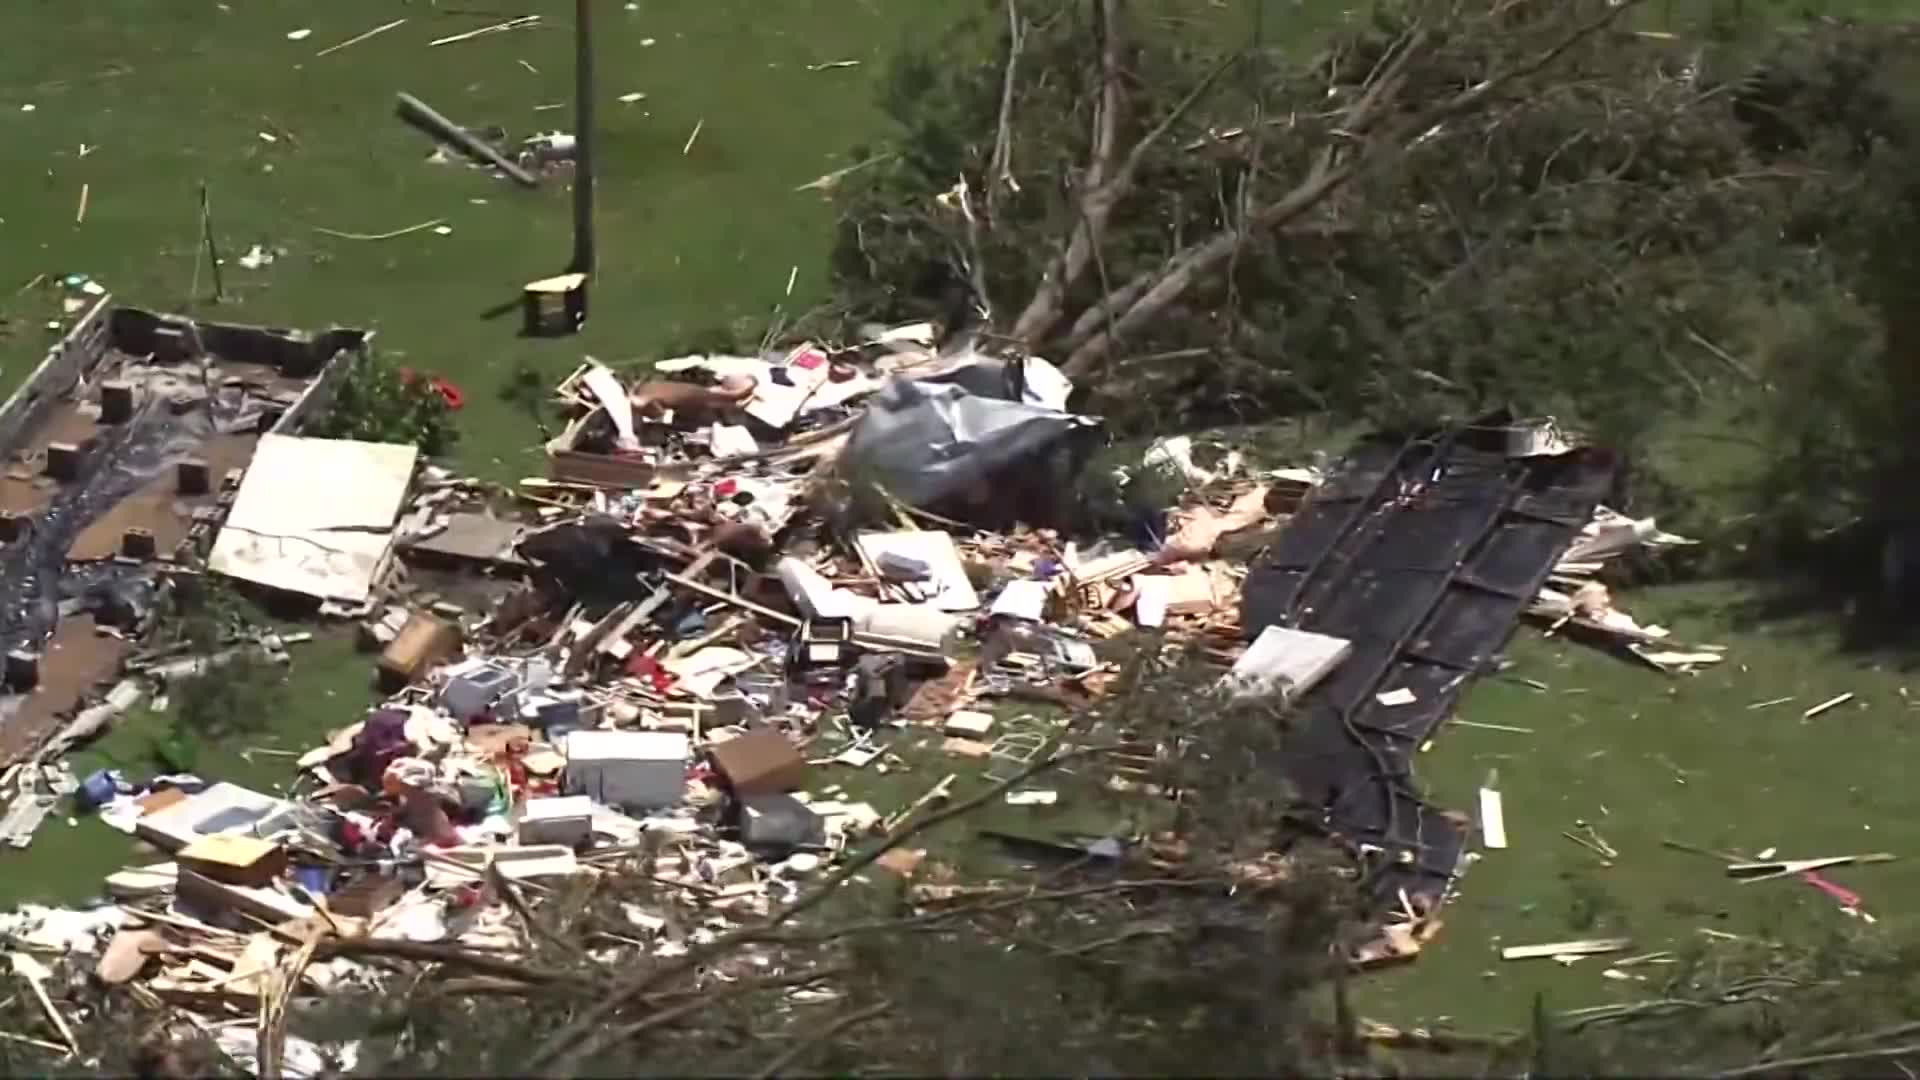 Raleigh firefighters recount saving brothers from wreckage of Hurricane Isaias (WNCN)